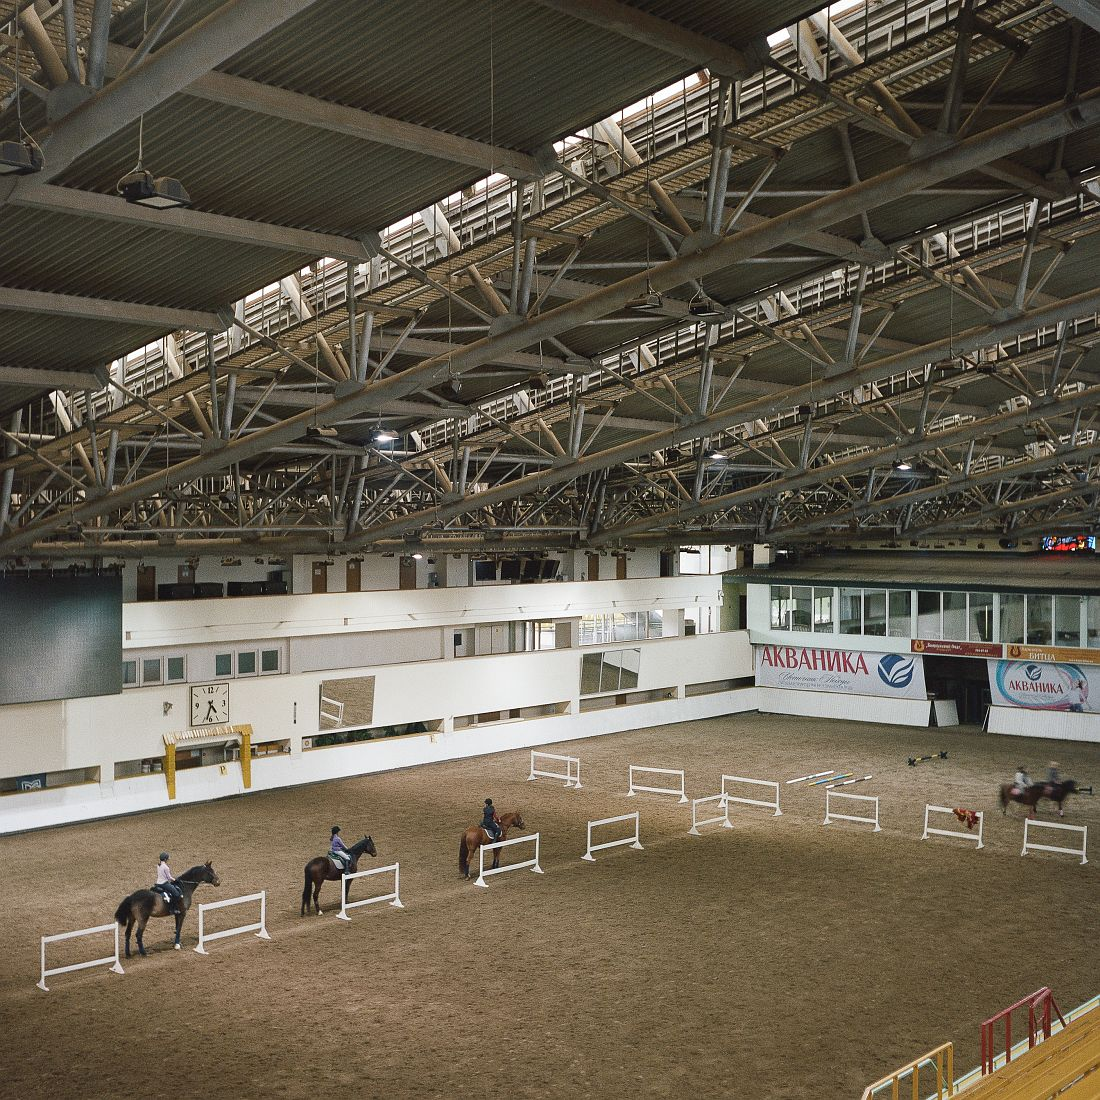 View of the indoor arena at Bitza Equestrian Complex. The complex completed in 1980 remains Europe's largest equestrian complex. The complex hosted all equestrian venues during the olympics and currently continues to be used for equestrian sports.